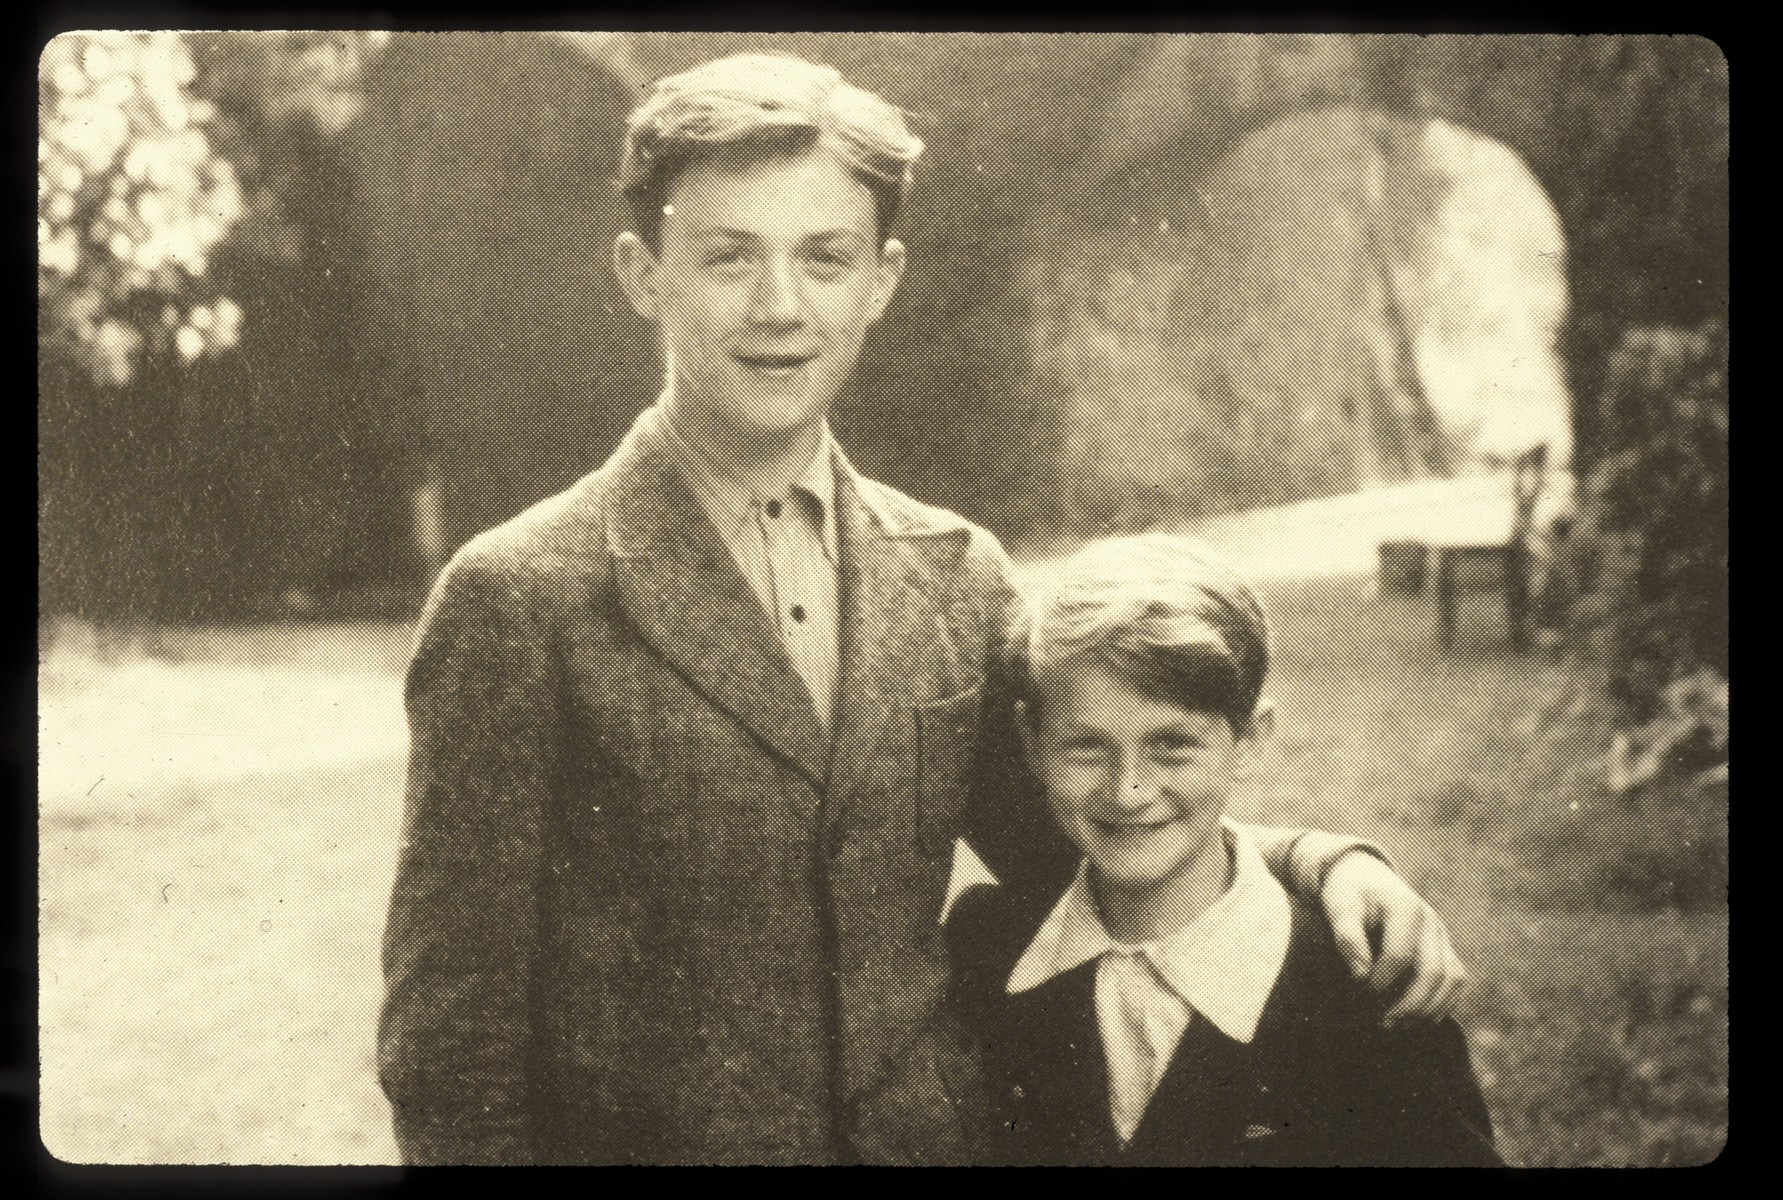 Portait of two Jewish brothers who were saved by Father Bruno.  Pictured are Bernard and Charles Rotmil.  The photograph was taken by Father Bruno the day that the brothers arrived at Le Mont Cesar  in June 1943.